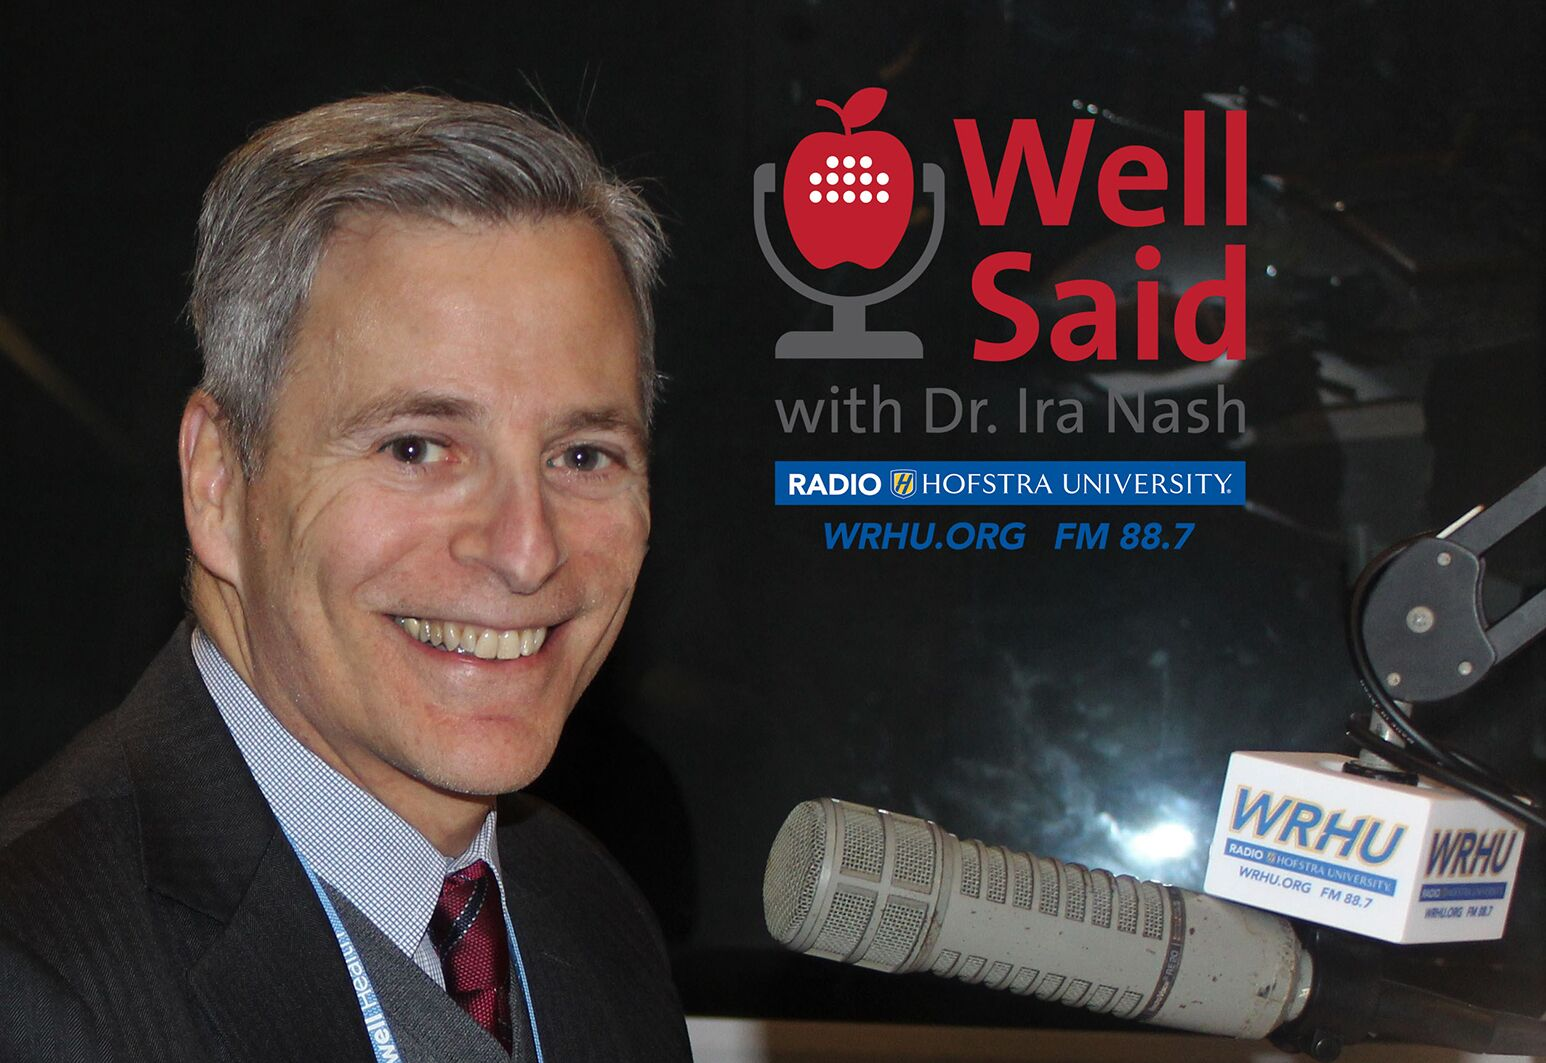 The Donald and Barbara Zucker School of Medicine at Hofstra/Northwell is taking health education to the airwaves with the launch of their new weekly, half-hour radio show, Well Said with Dr. Ira Nash.